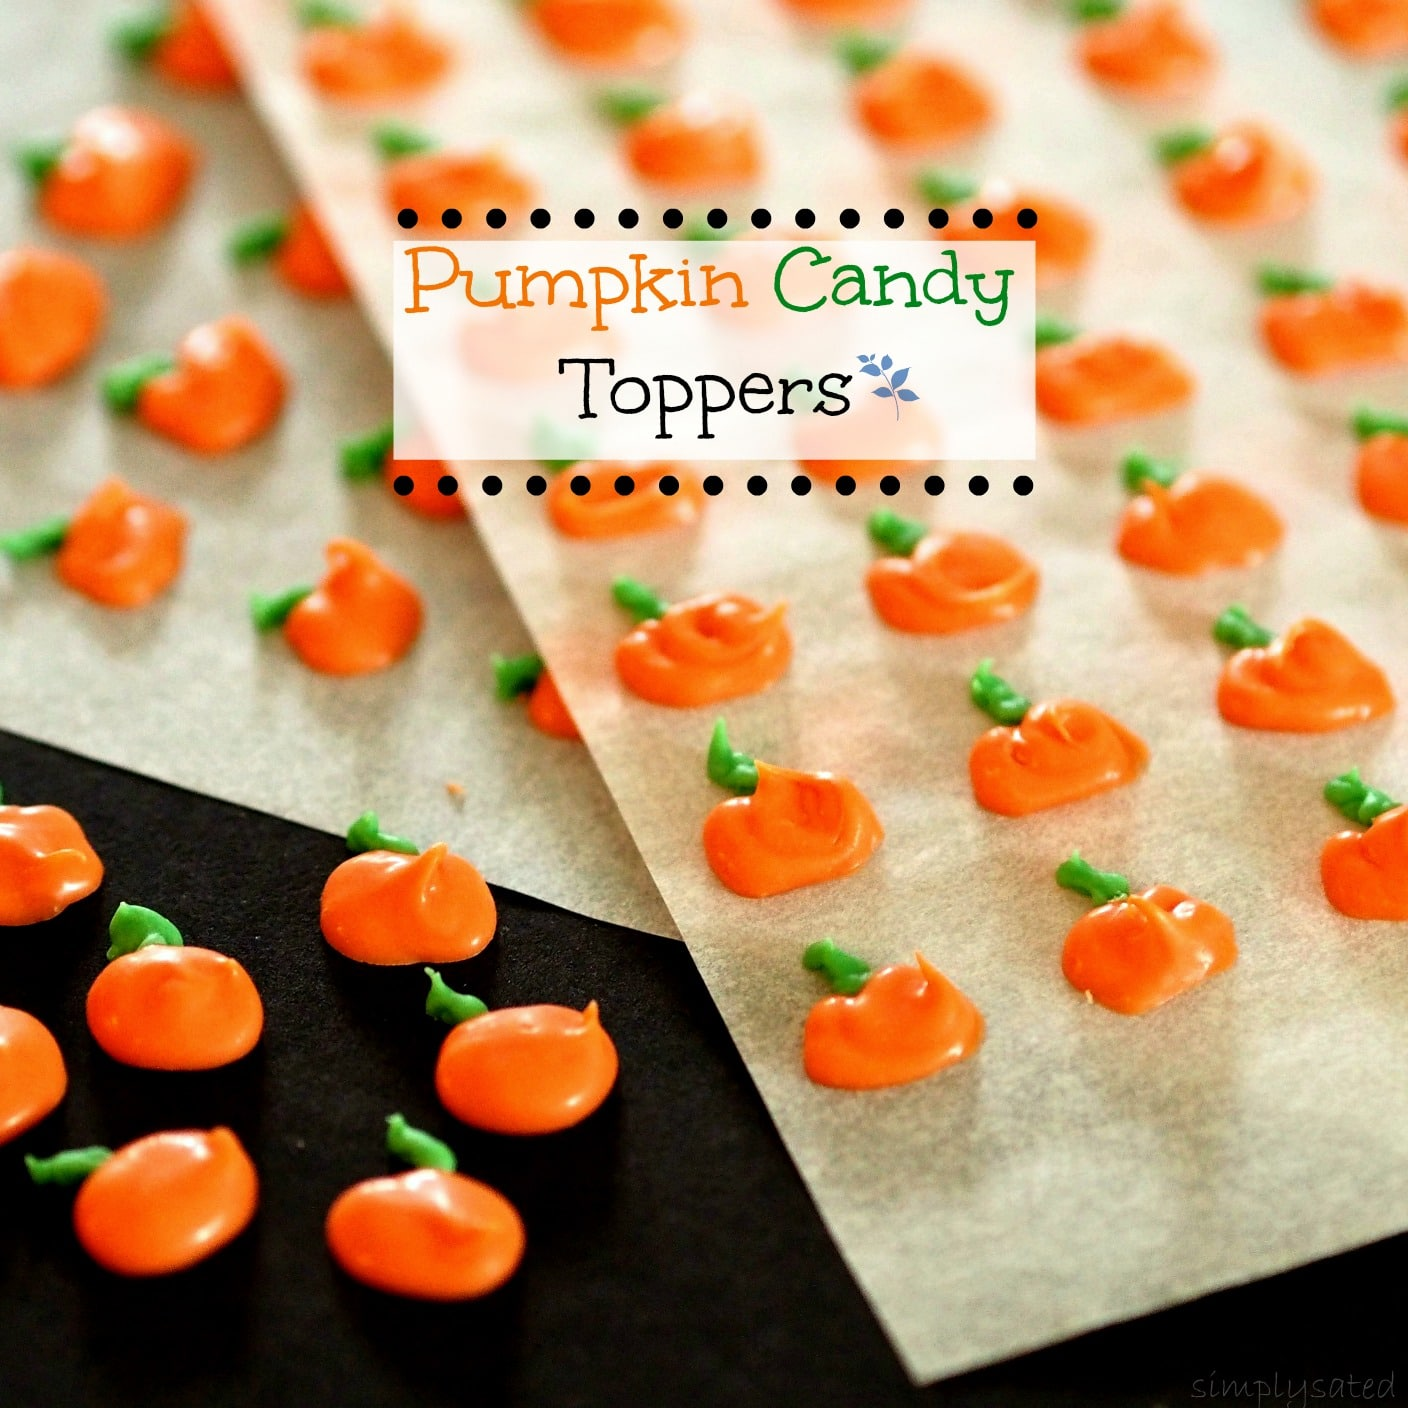 Pumpkin Candy Toppers